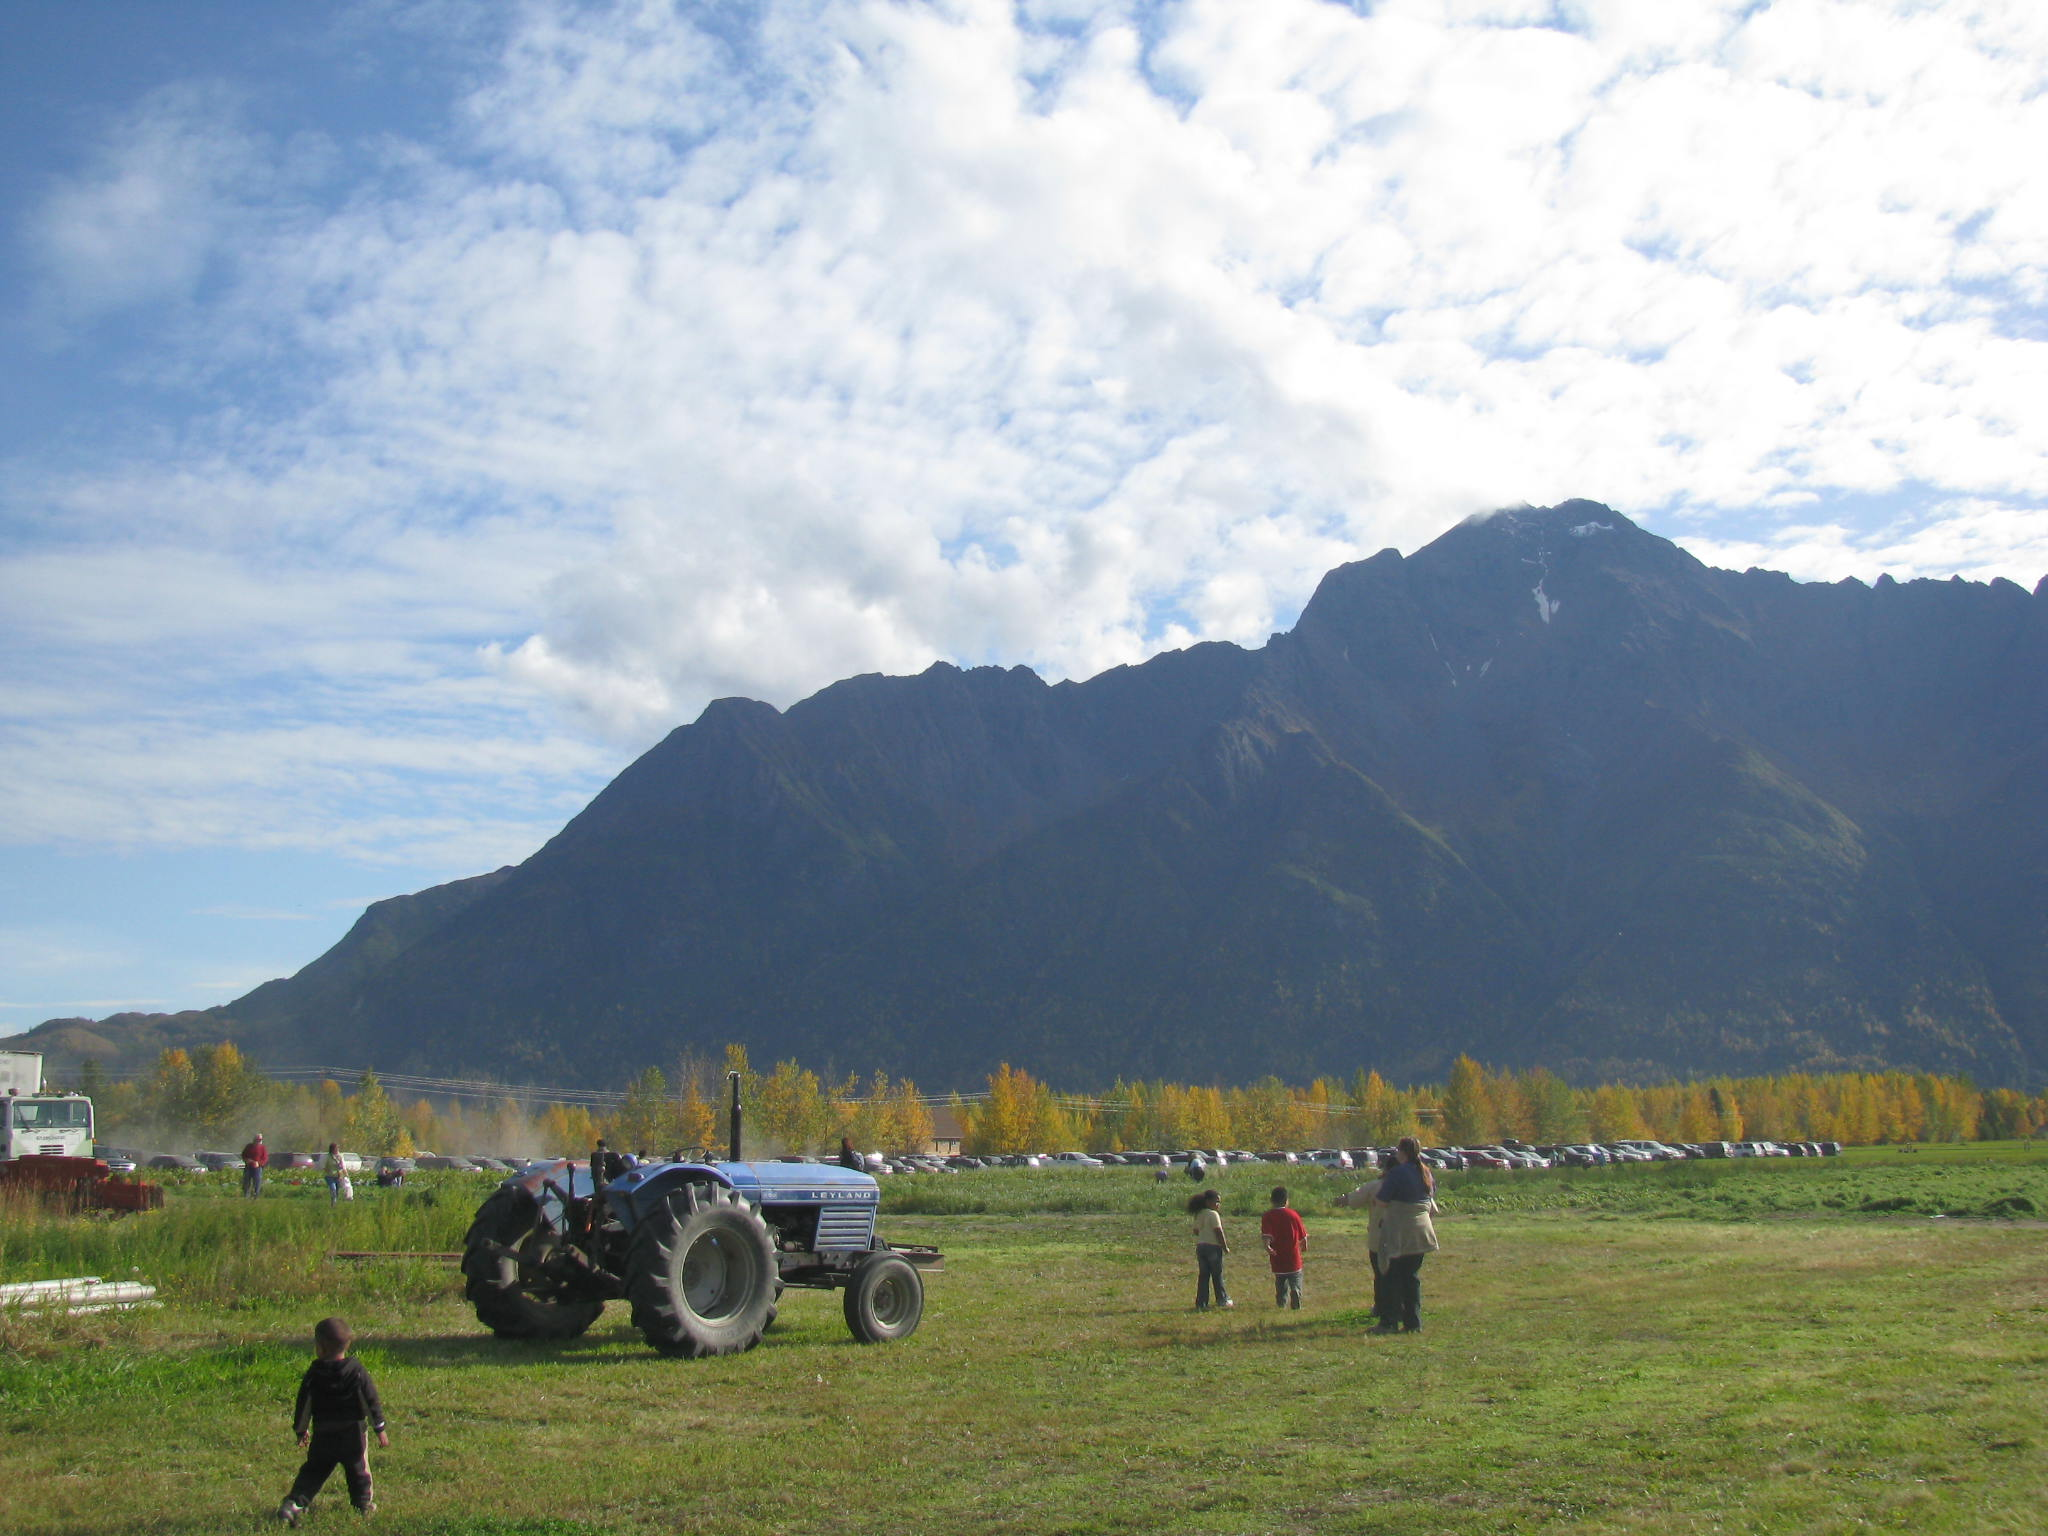 Farm in Alaska showing a cabless Ford tractor. Image by Sarah Hurst via flickr.com